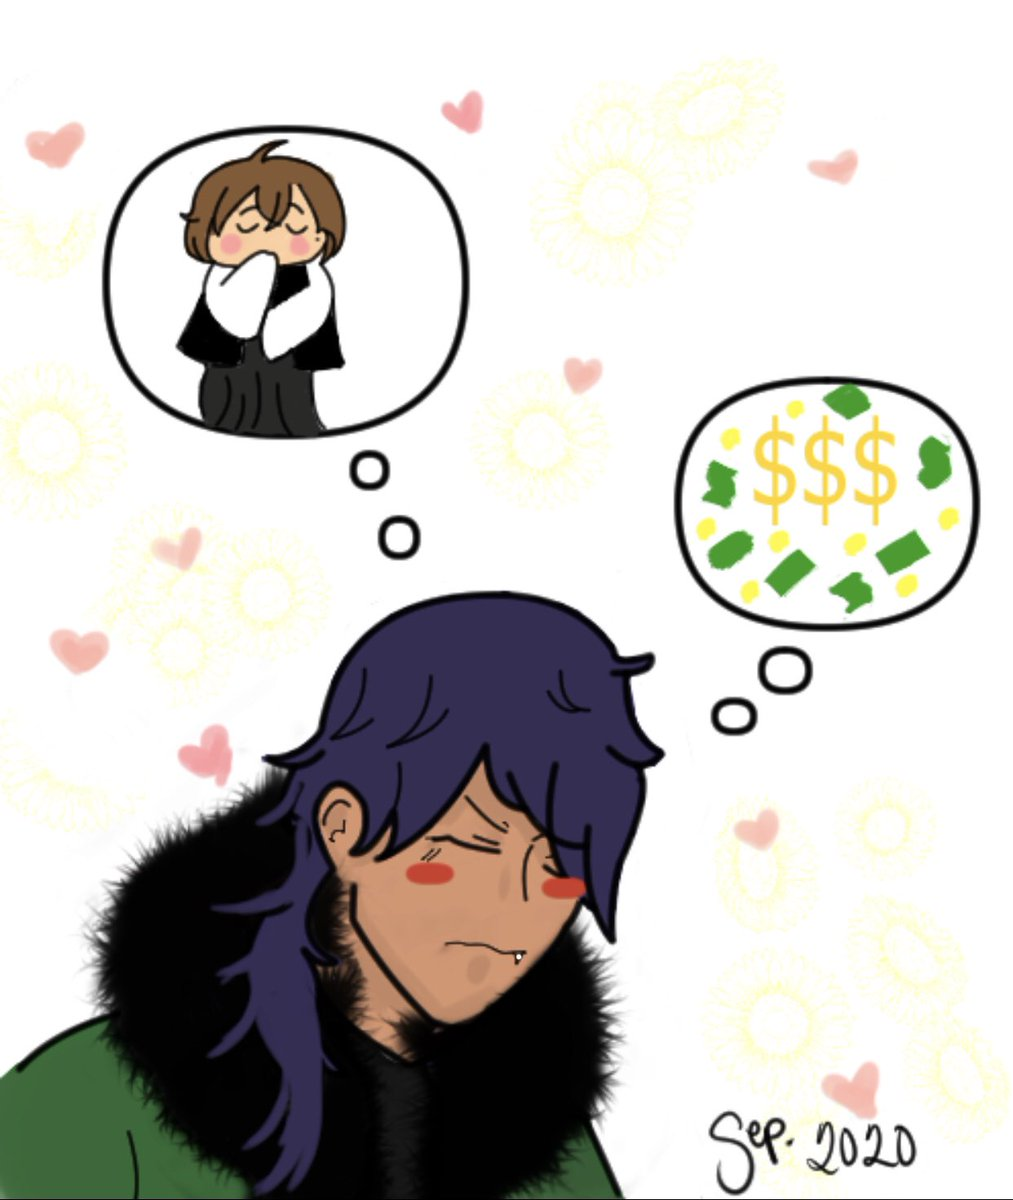 Cannon Dice would've done both 😏😂  Get some money first then hit the slots, that is 😂😂😂   #HypnosisMic #GenDice #Gentaro #Dice https://t.co/2wKHbVYSIy